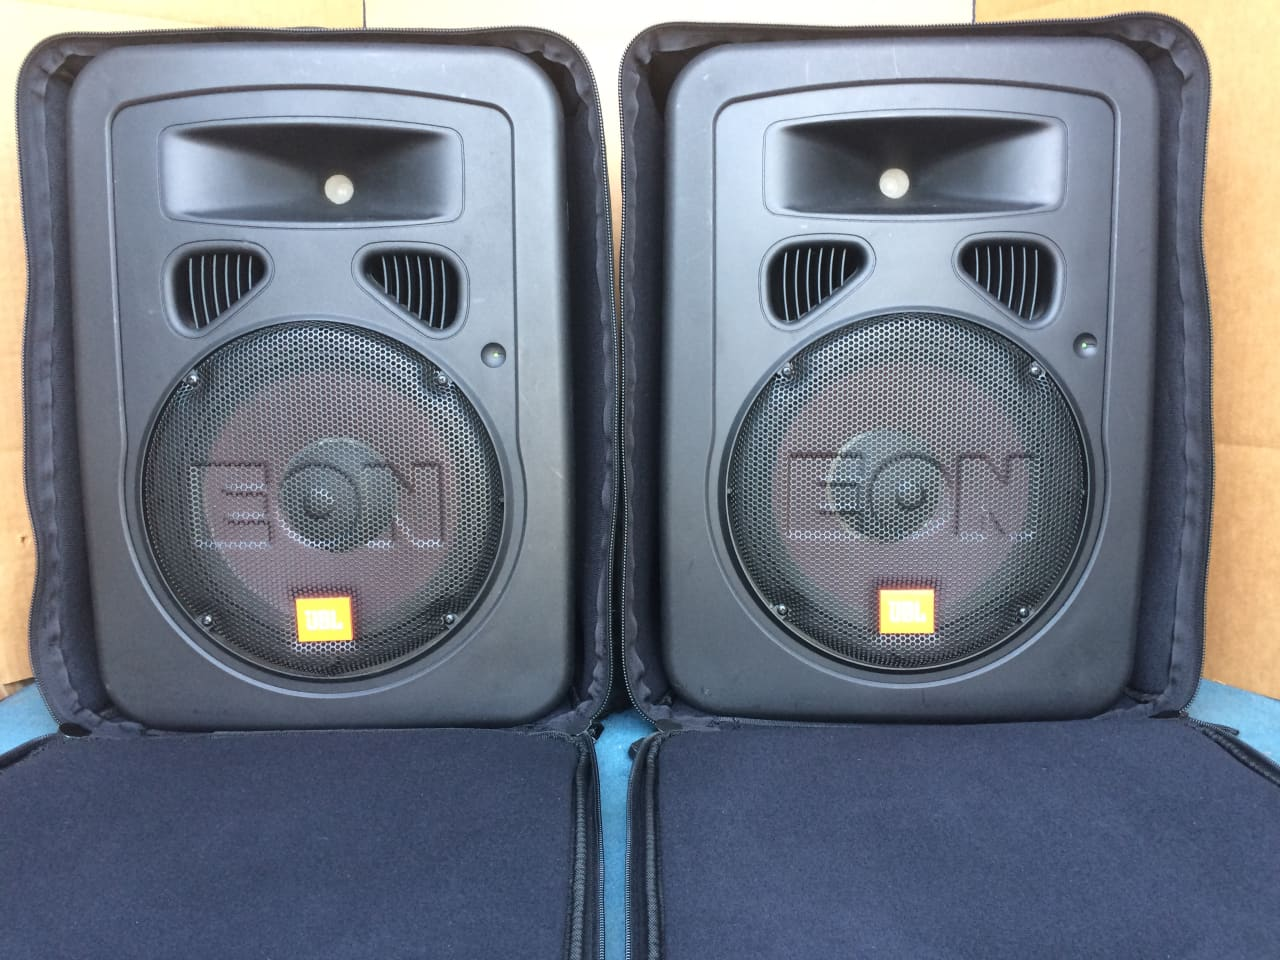 jbl eon g2 10 pa speakers reverb. Black Bedroom Furniture Sets. Home Design Ideas